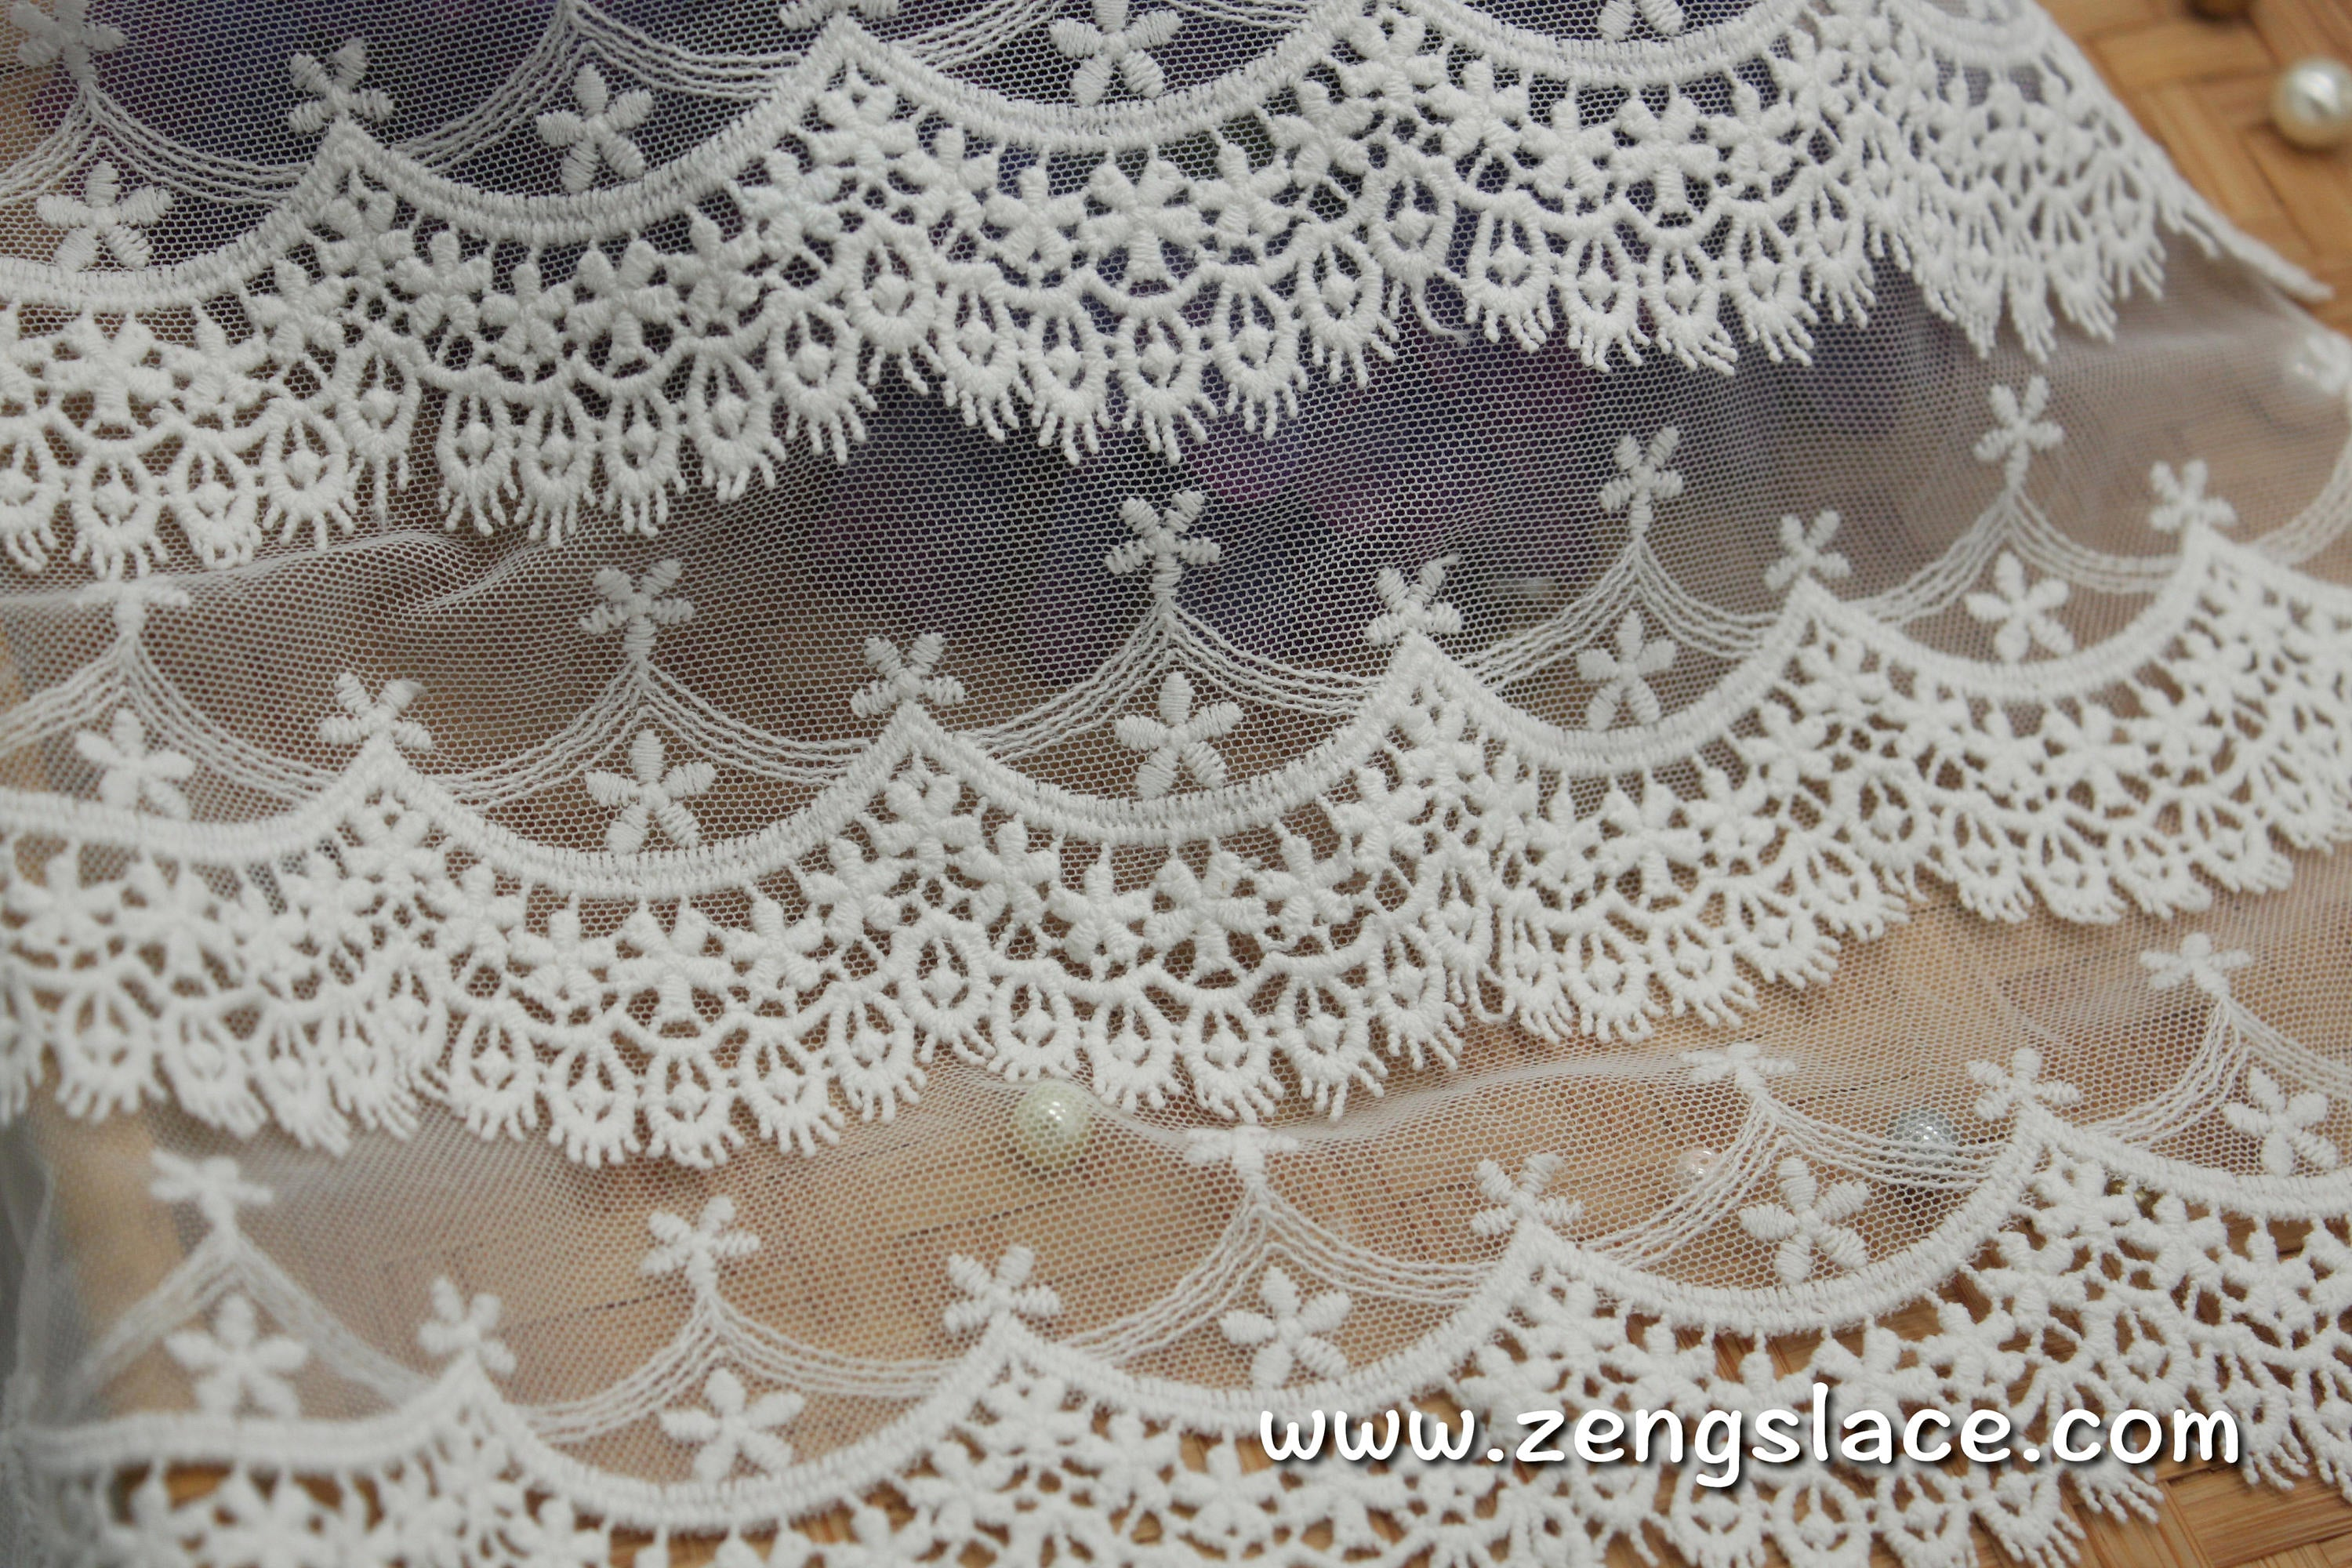 Beautiful silver grey d lace applique flower nigerian lace